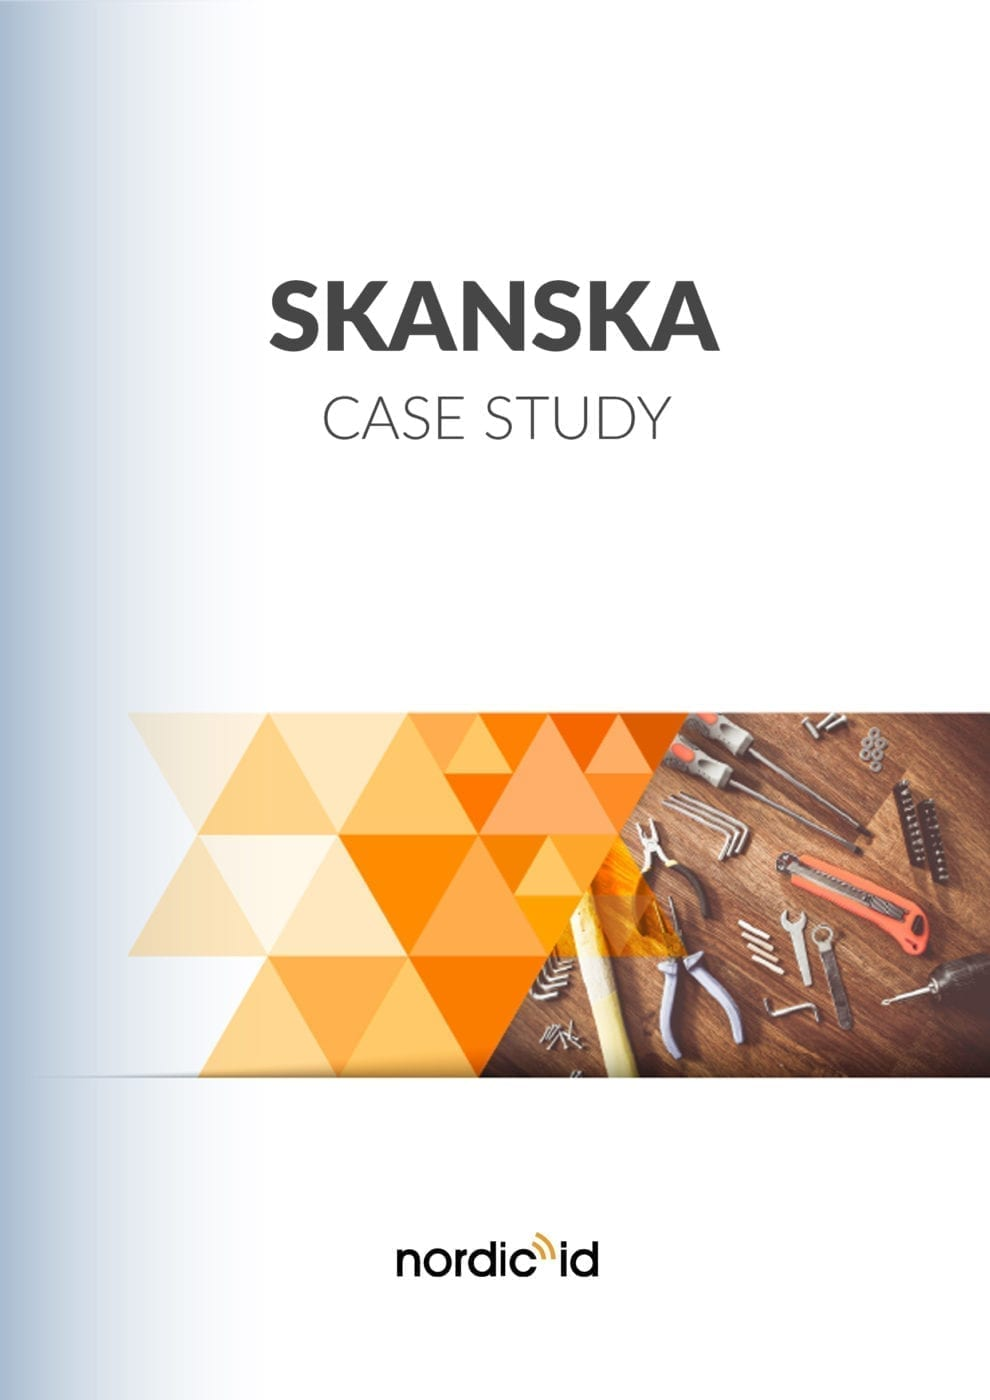 skanska case study rfid for accuracy and visibility